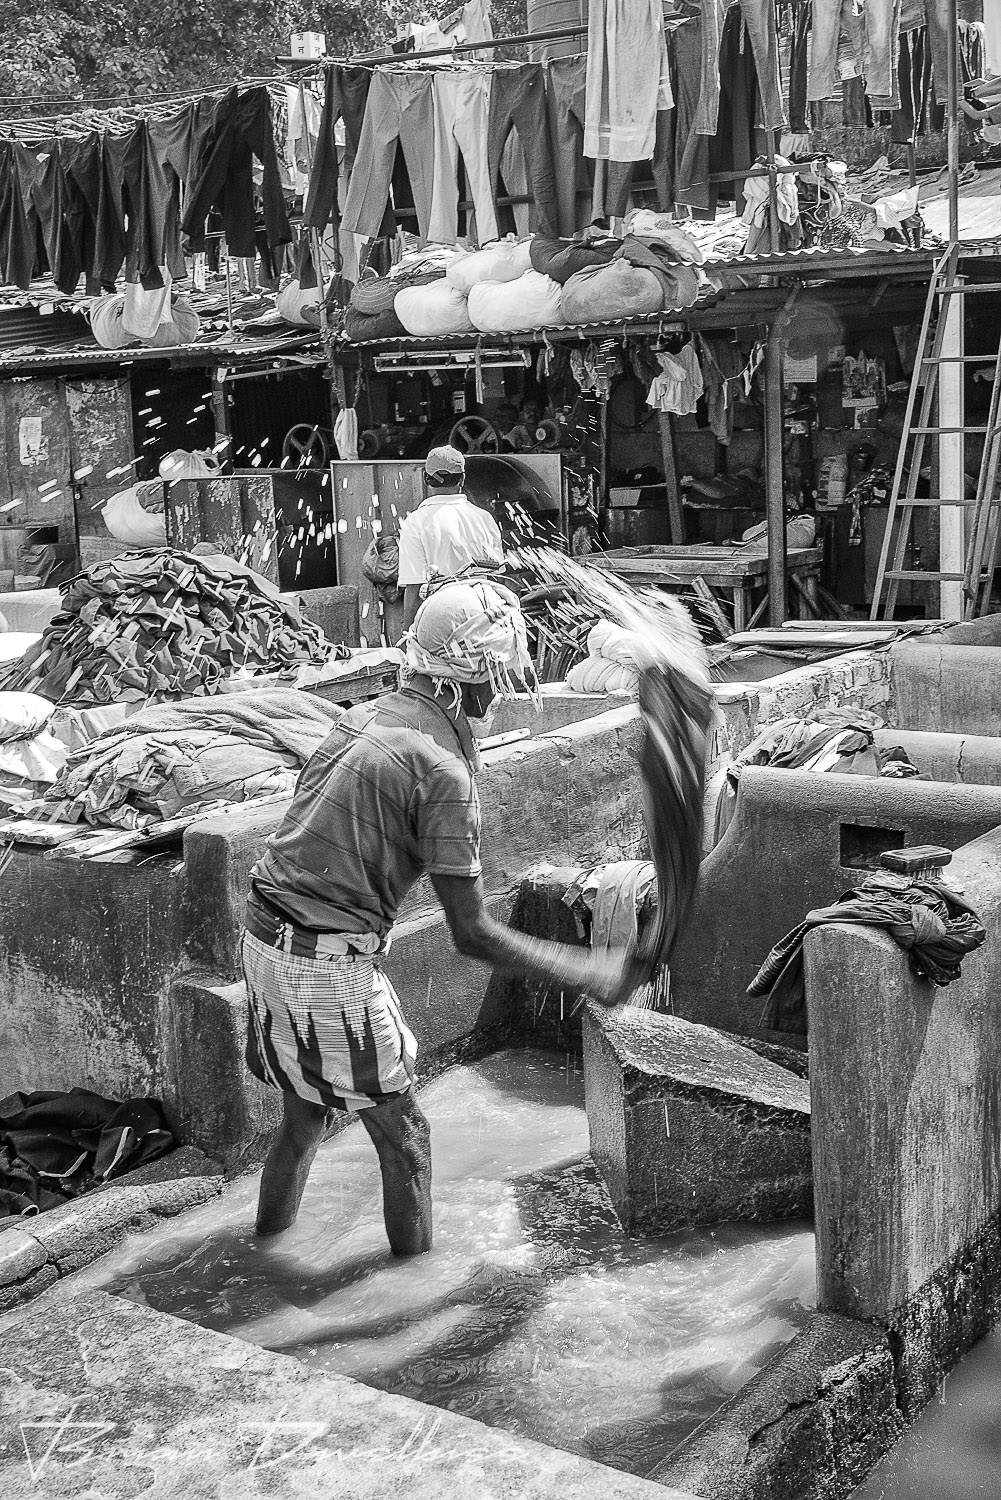 People doing laundry outdoors under hanging garments at Dhobi Ghat in Mumbai, India in black and white.